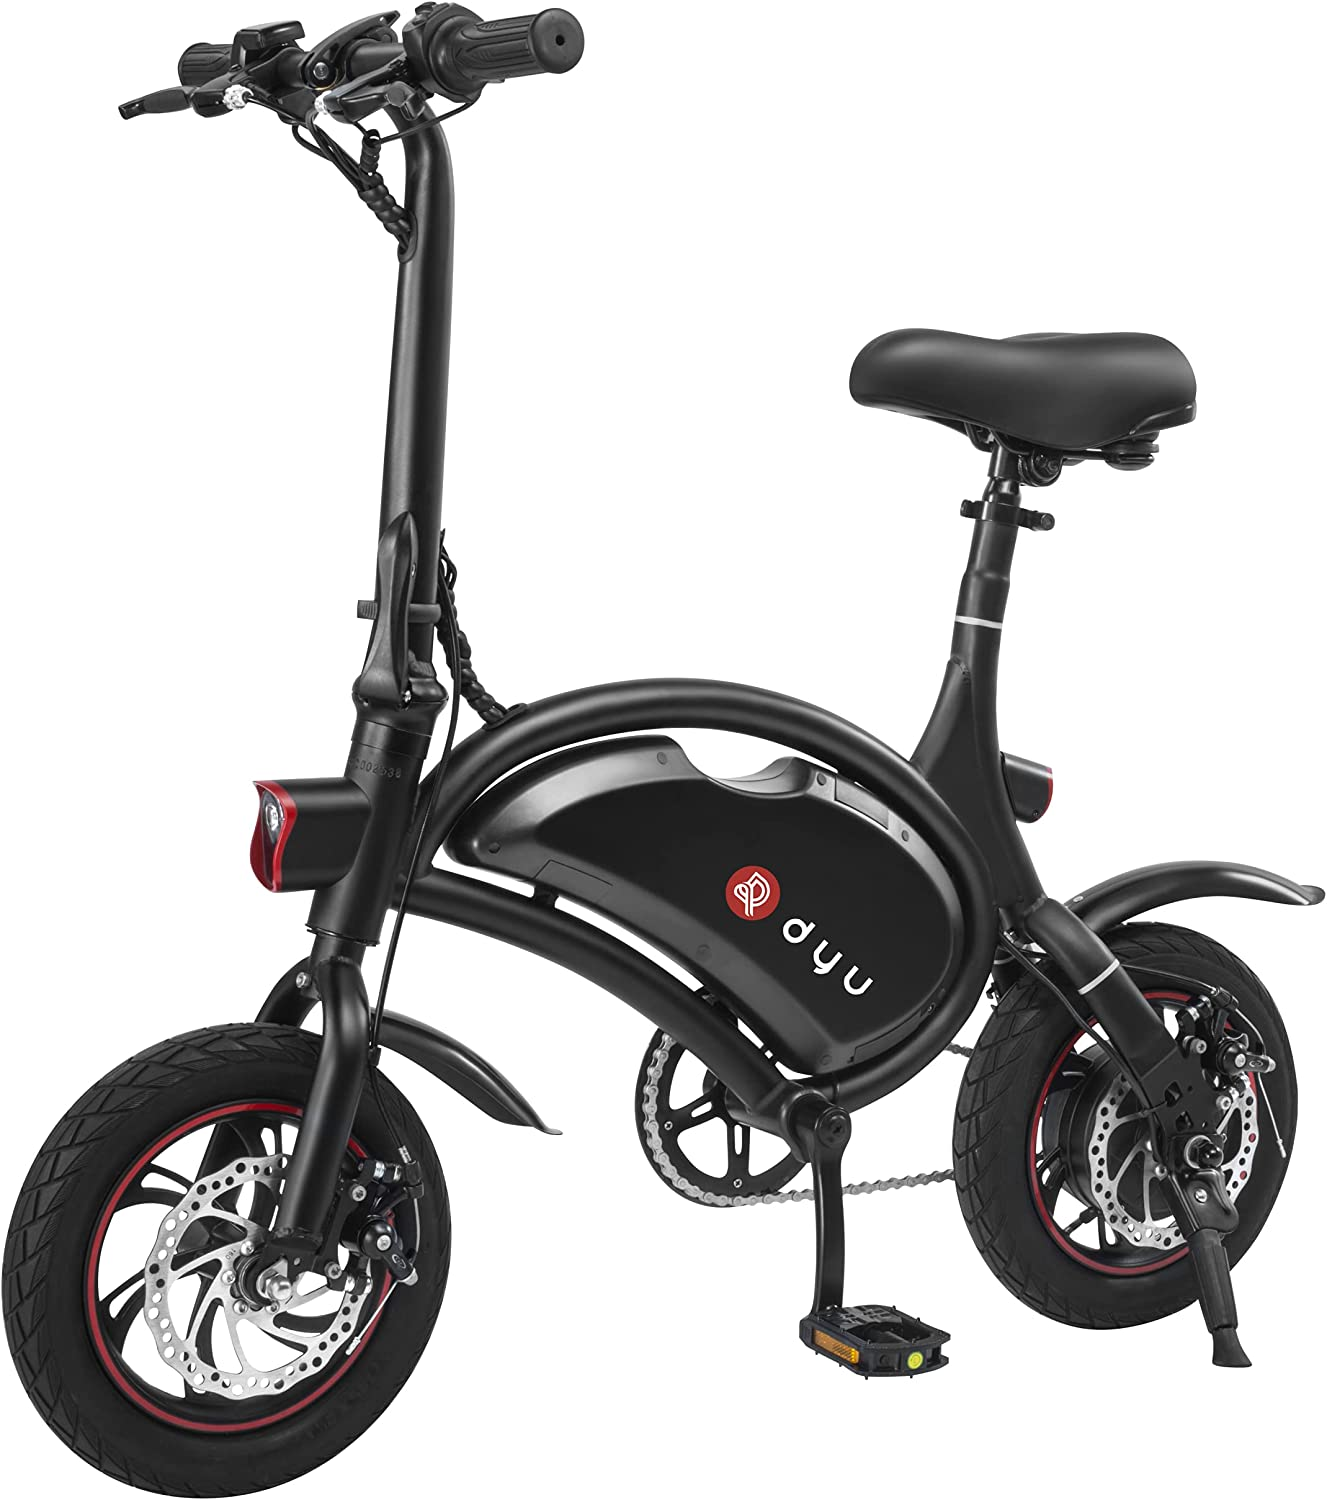 DYU Folding Some reservation Electric Bike Ebike Limited time for free shipping Commuter Bicycle D2F w